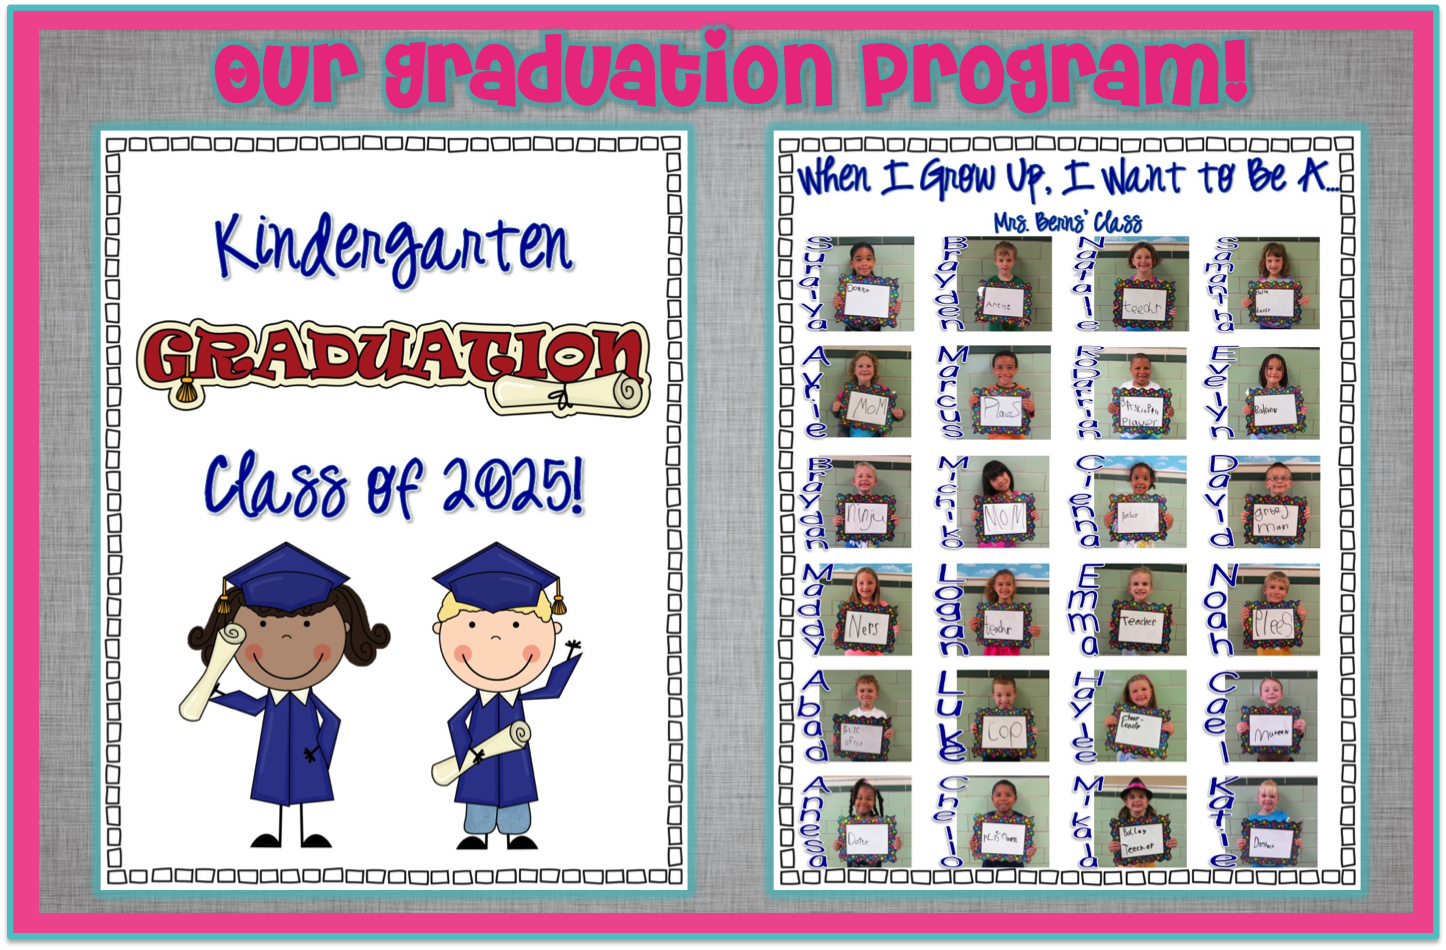 Kindergarten Graduation Program  Kindergarten Graduation  A Very